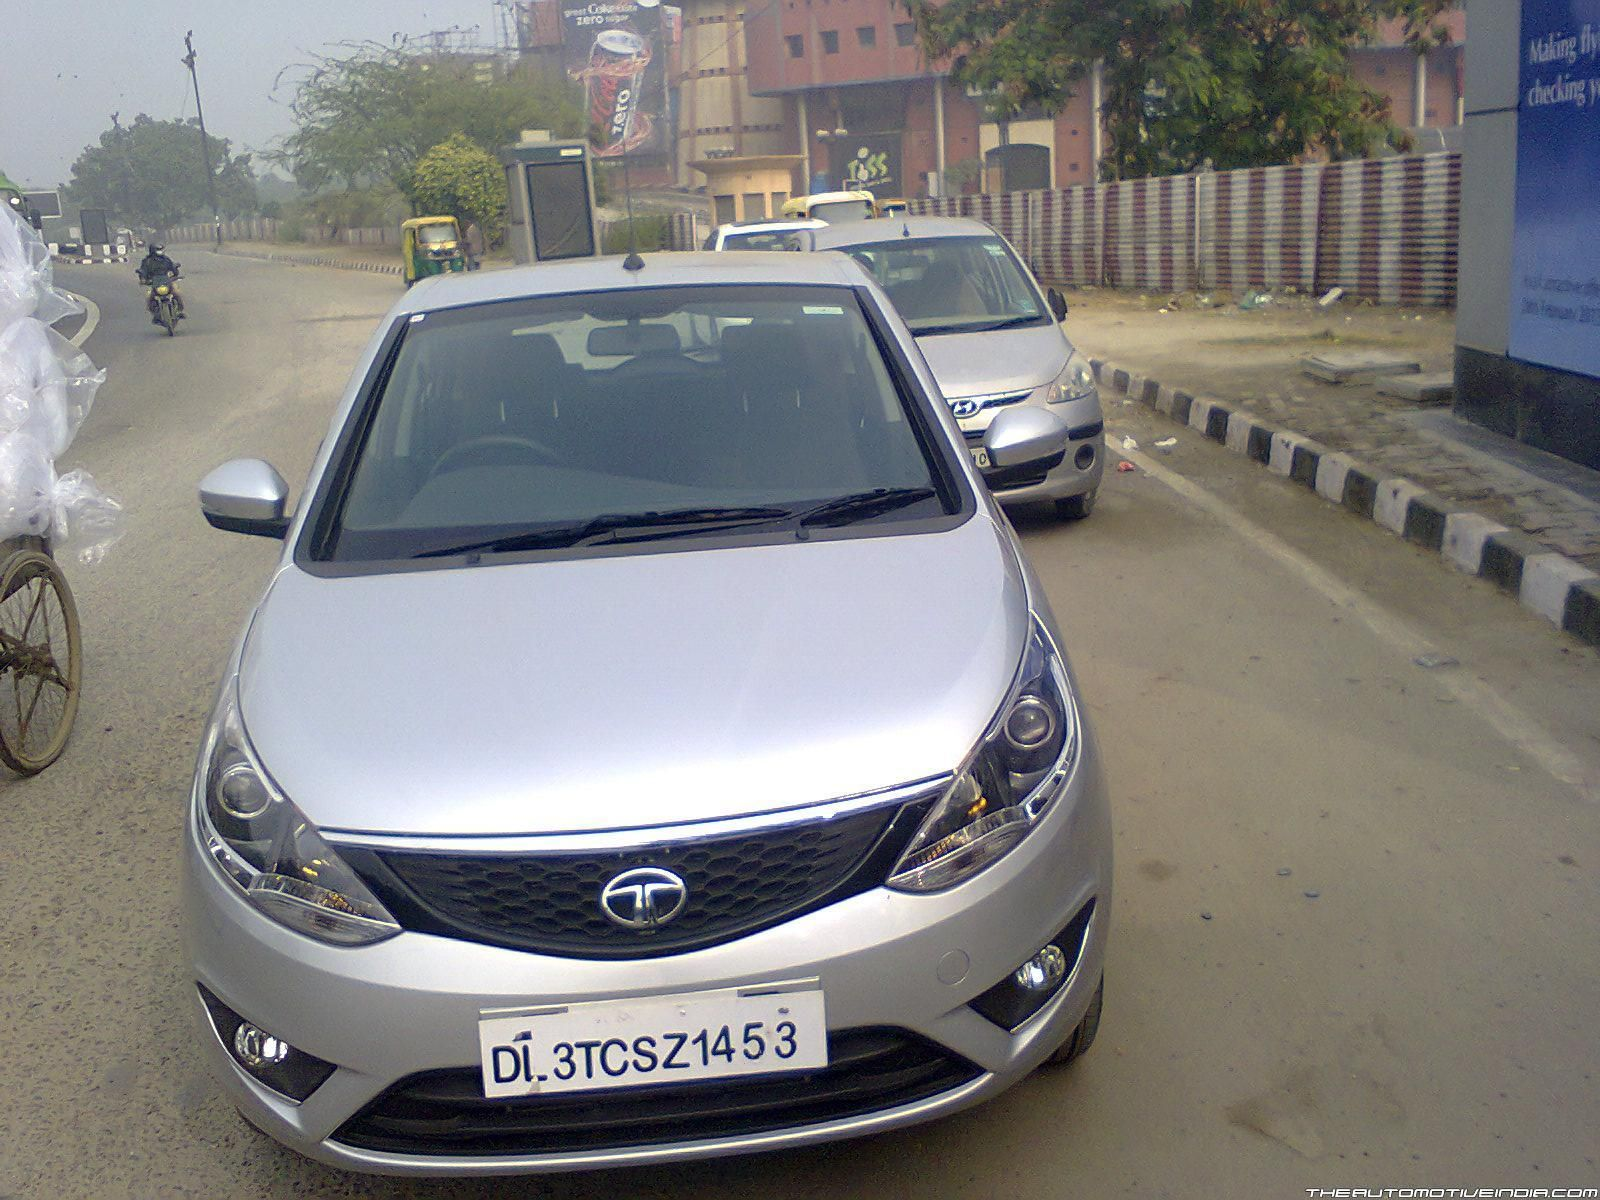 Tata Bolt Review Tata Bolt price tag is between Rs.4.45